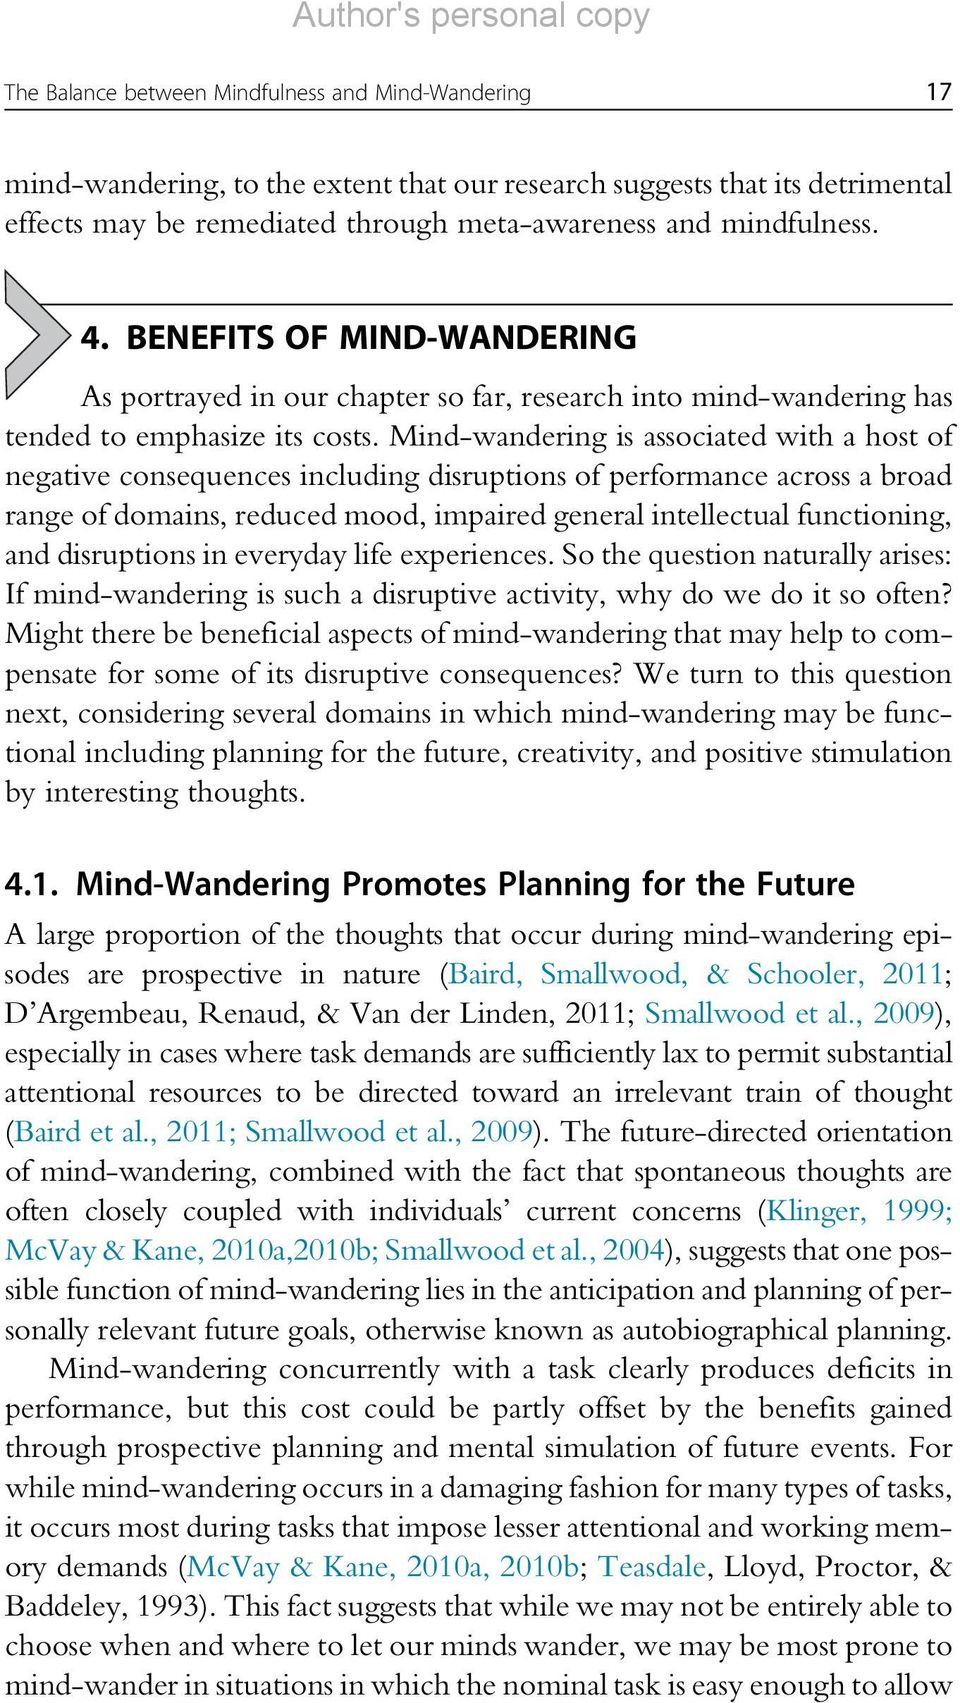 Mind-wandering is associated with a host of negative consequences including disruptions of performance across a broad range of domains, reduced mood, impaired general intellectual functioning, and